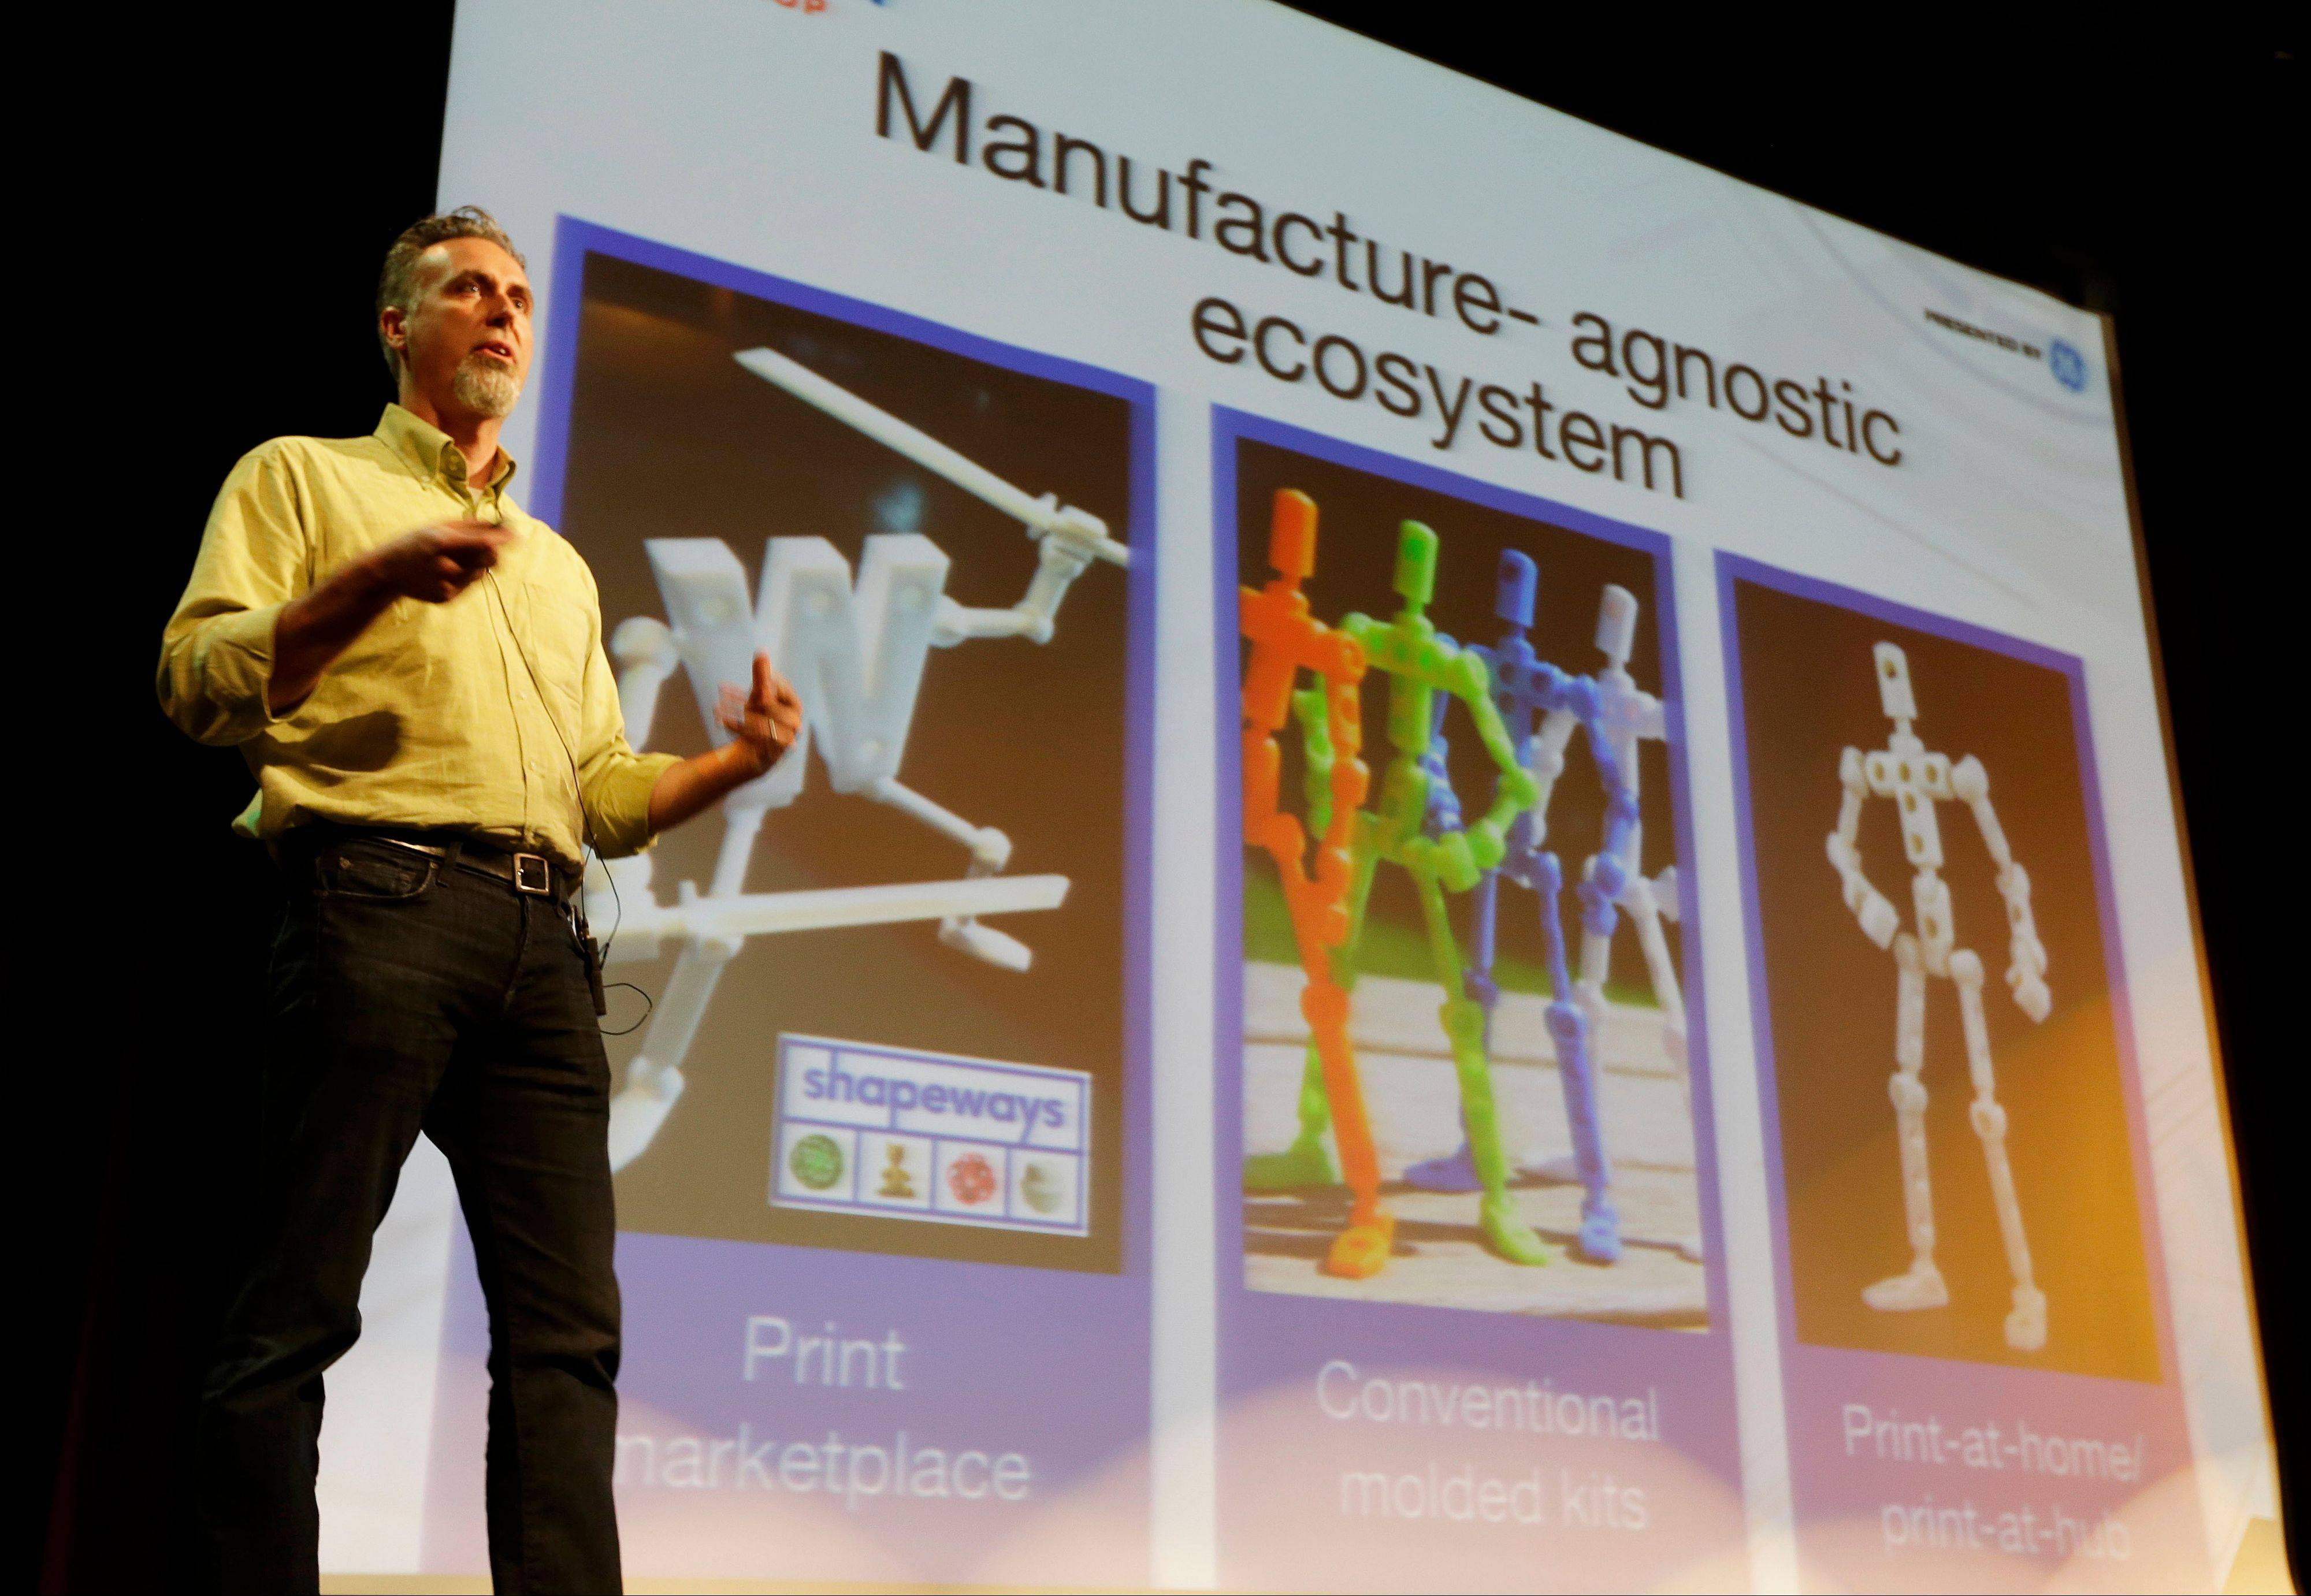 Wayne Losey, co-founder of Dynamo DevLabs, speaks about 3-D printing during the Hardware Innovation Workshop in San Mateo, Calif., May 13. With the printers users make whatever they like, iPad stands, guitars, jewelry, someone even made a rifle.